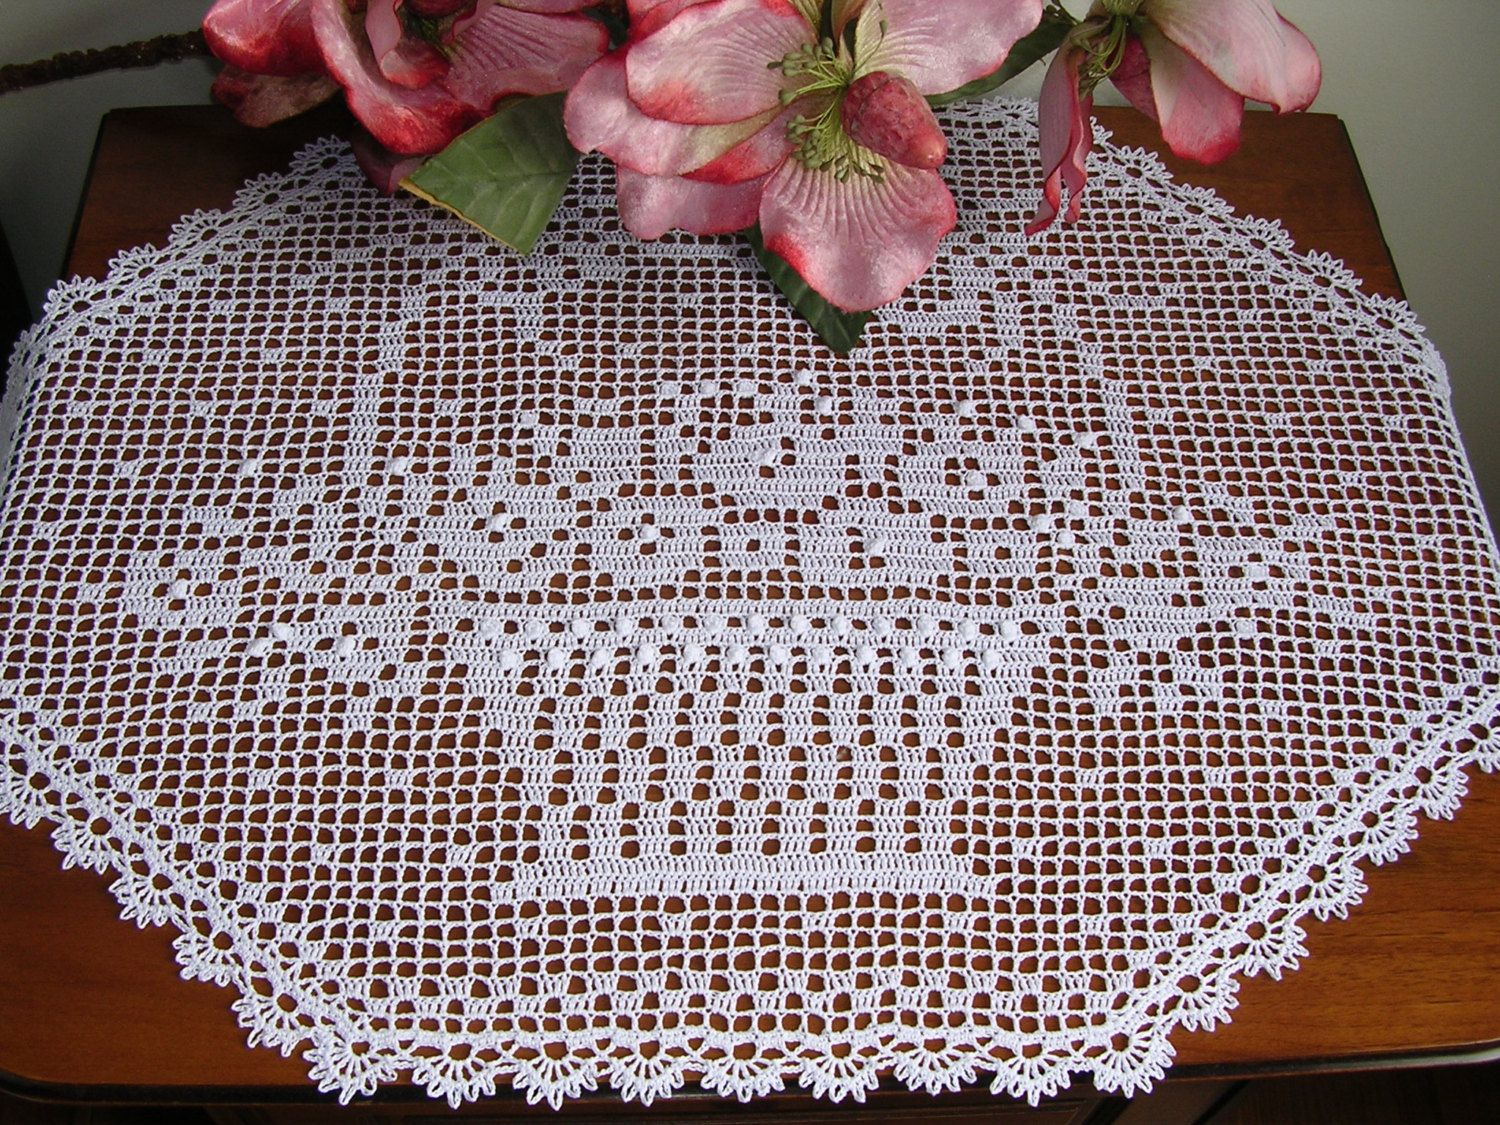 Centro pizzo ad uncinetto a filet tovaglietta con fiori cottone crochet lace large doily easter runner filet rectangular white cotton placemat centerpiece handmade home decor wedding birthday easter gift negle Choice Image